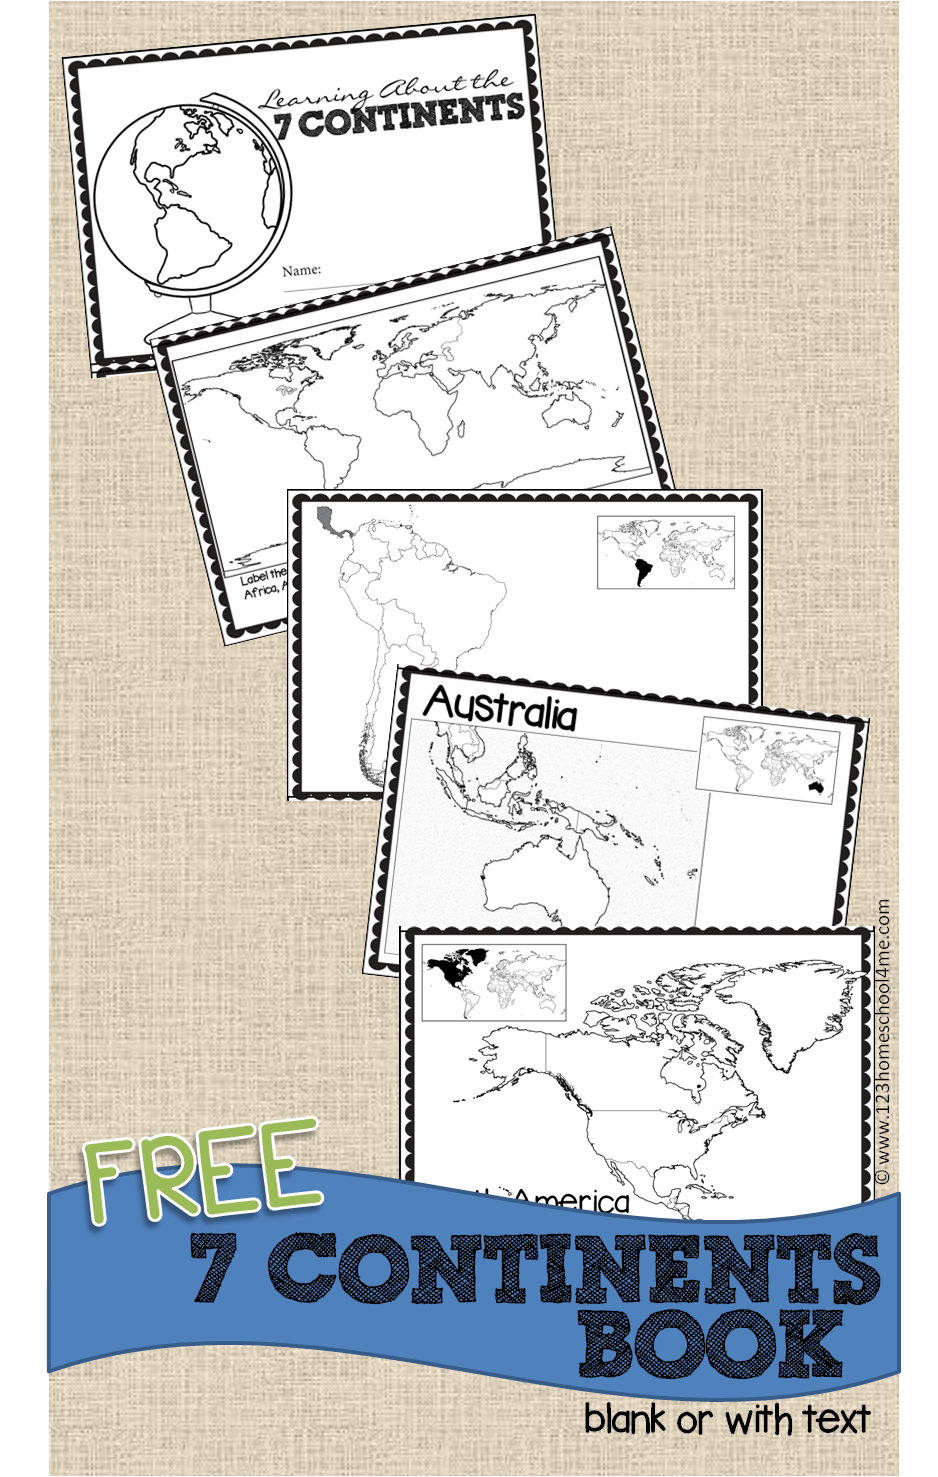 free printable continents book for kids perfect for geography for homeschool kindergarten 1st grade - Free Printable Kindergarten Books